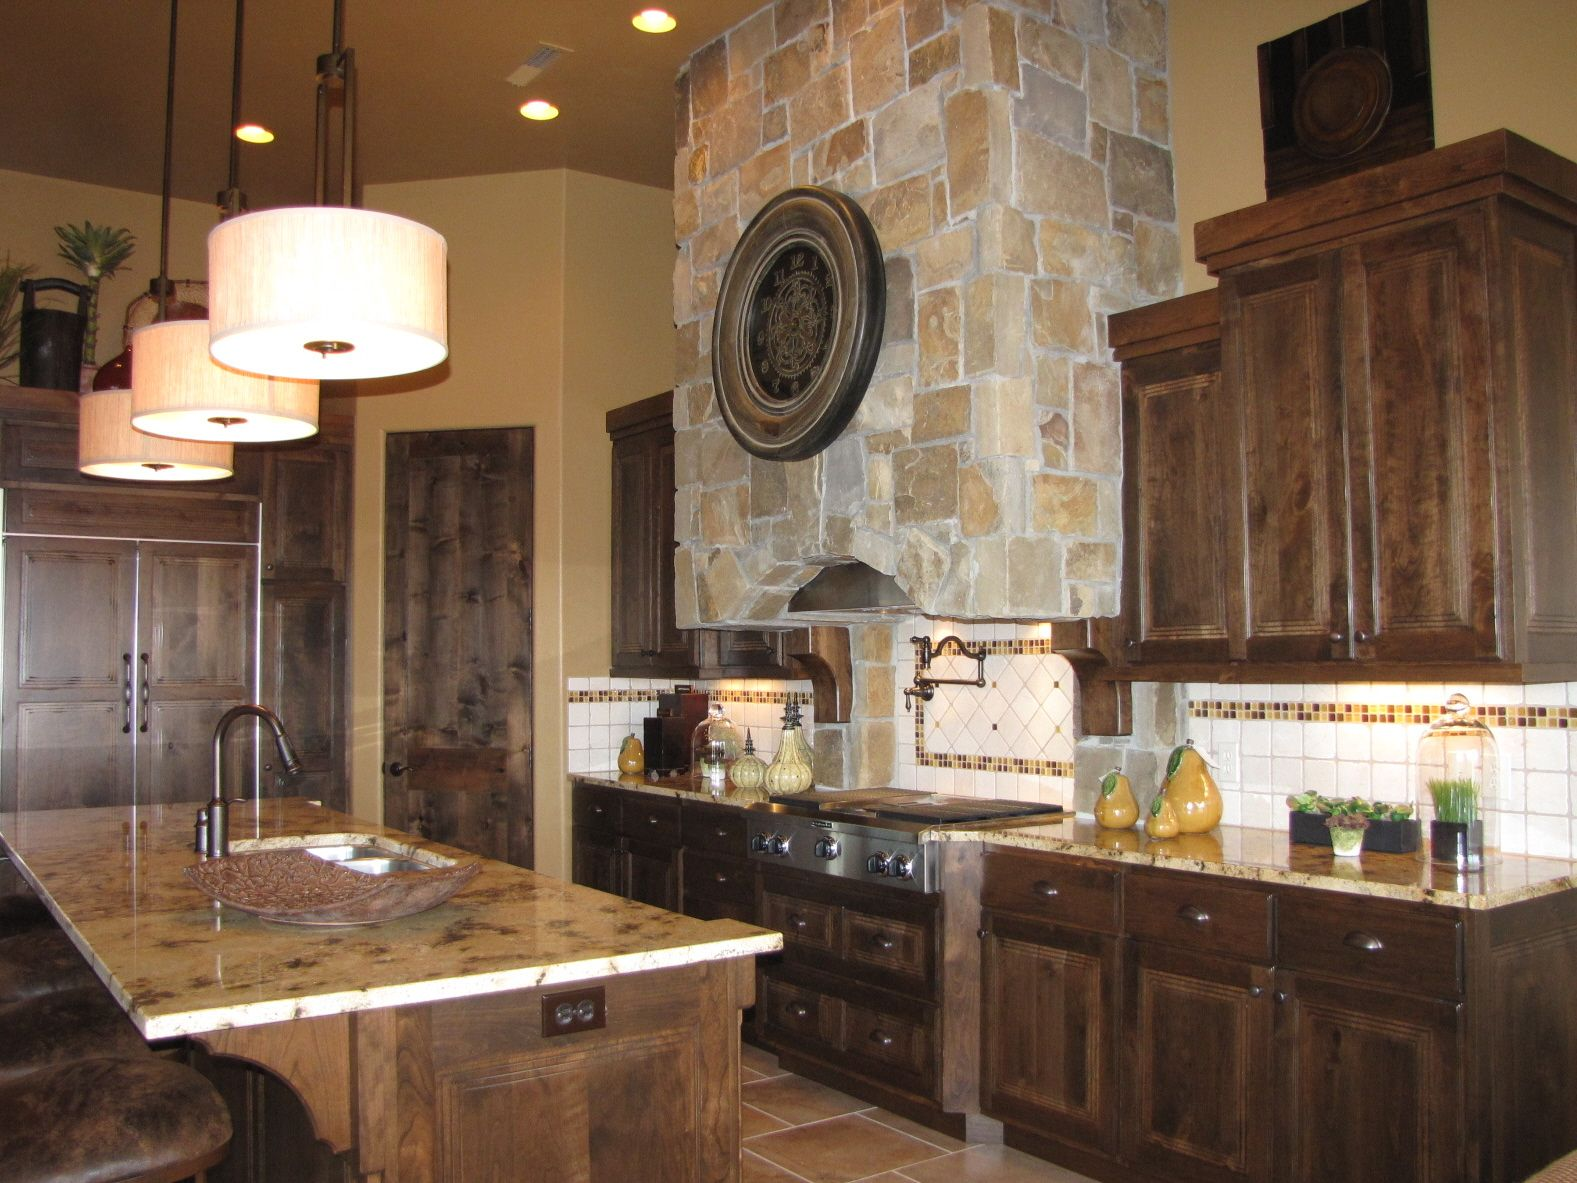 Cabinets rustic southwest kitchen rustic southwest - Kitchen cabinets southwest ...